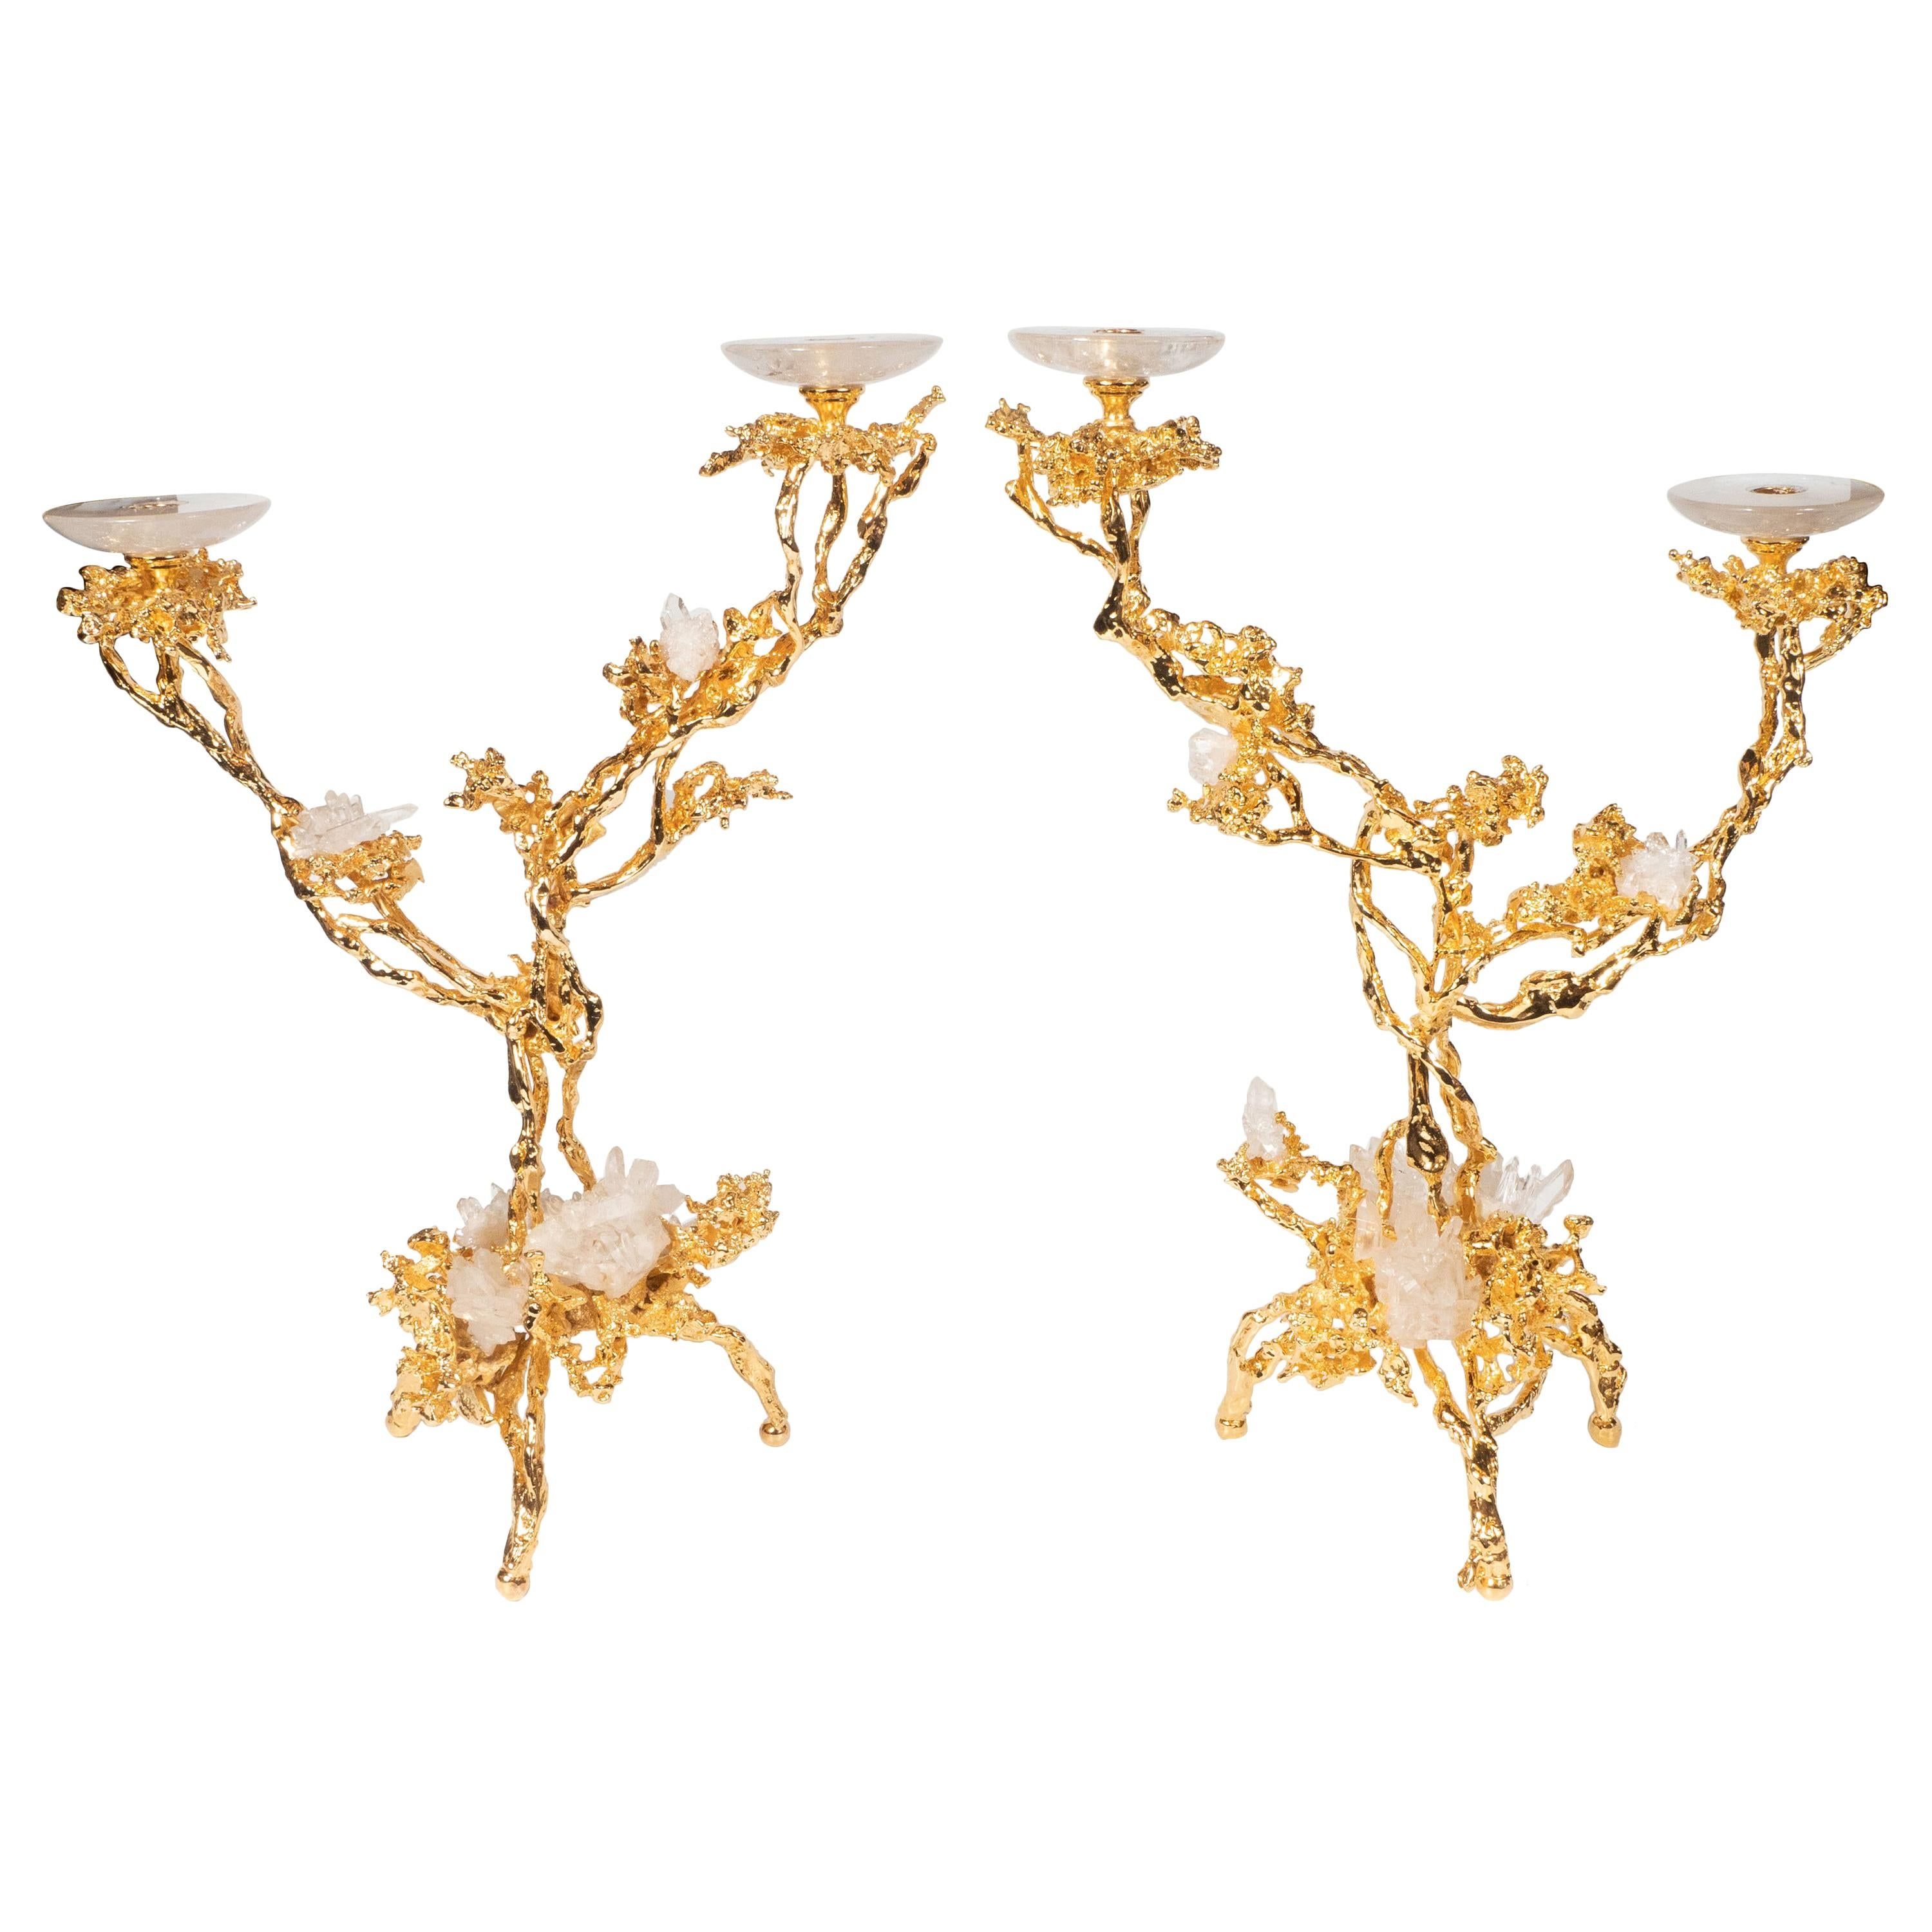 Pair of 24kt Gold Double Branch Candlesticks with Rock Crystals, Claude Boeltz